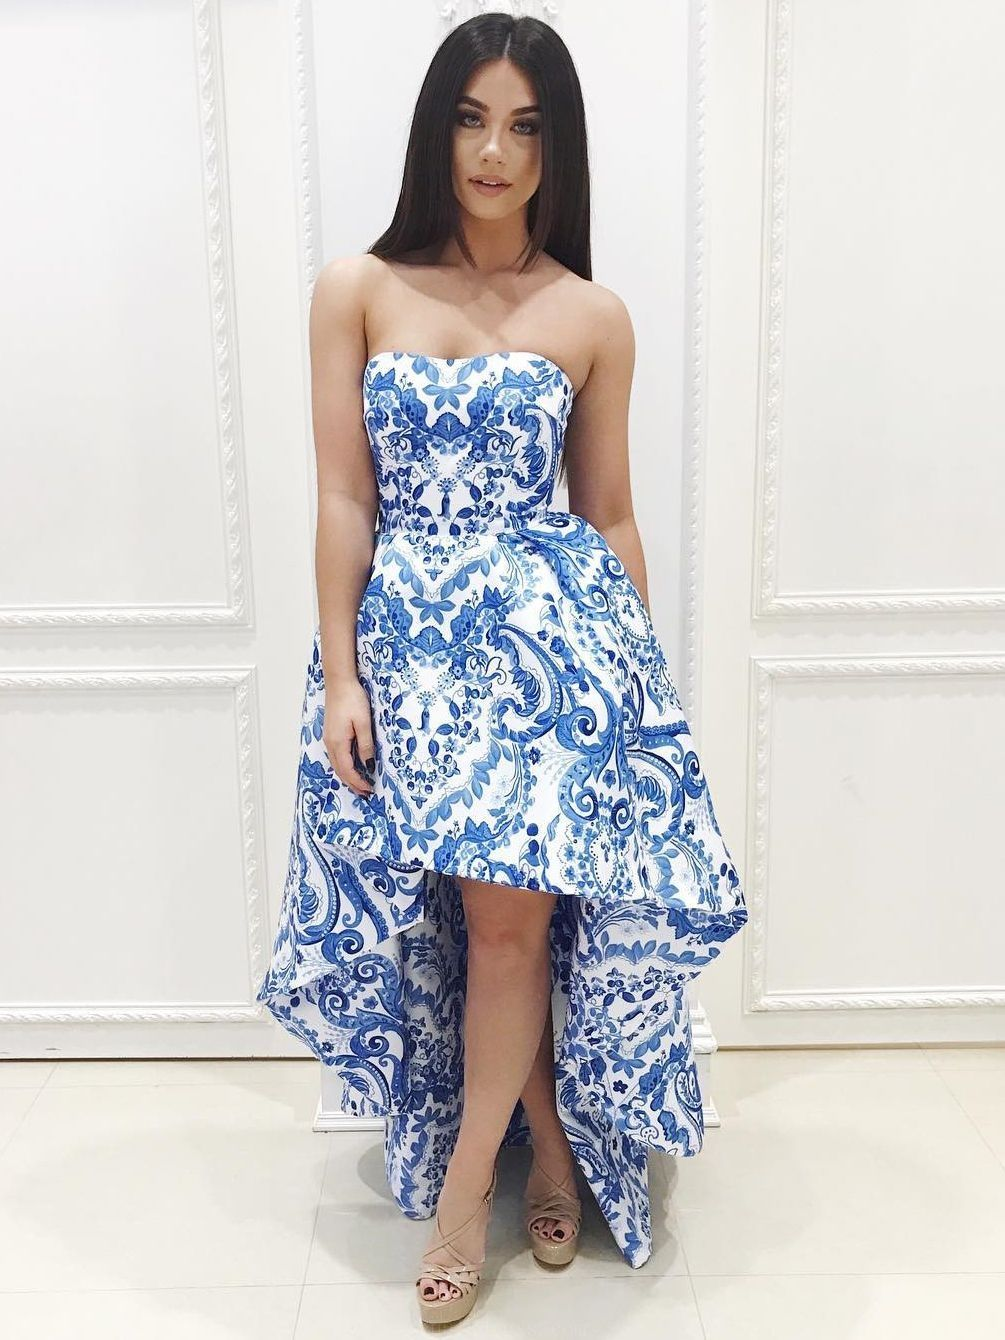 99c99d67ba43 Feminine High Low Homecoming Dresses Strapless High Low Blue And ...